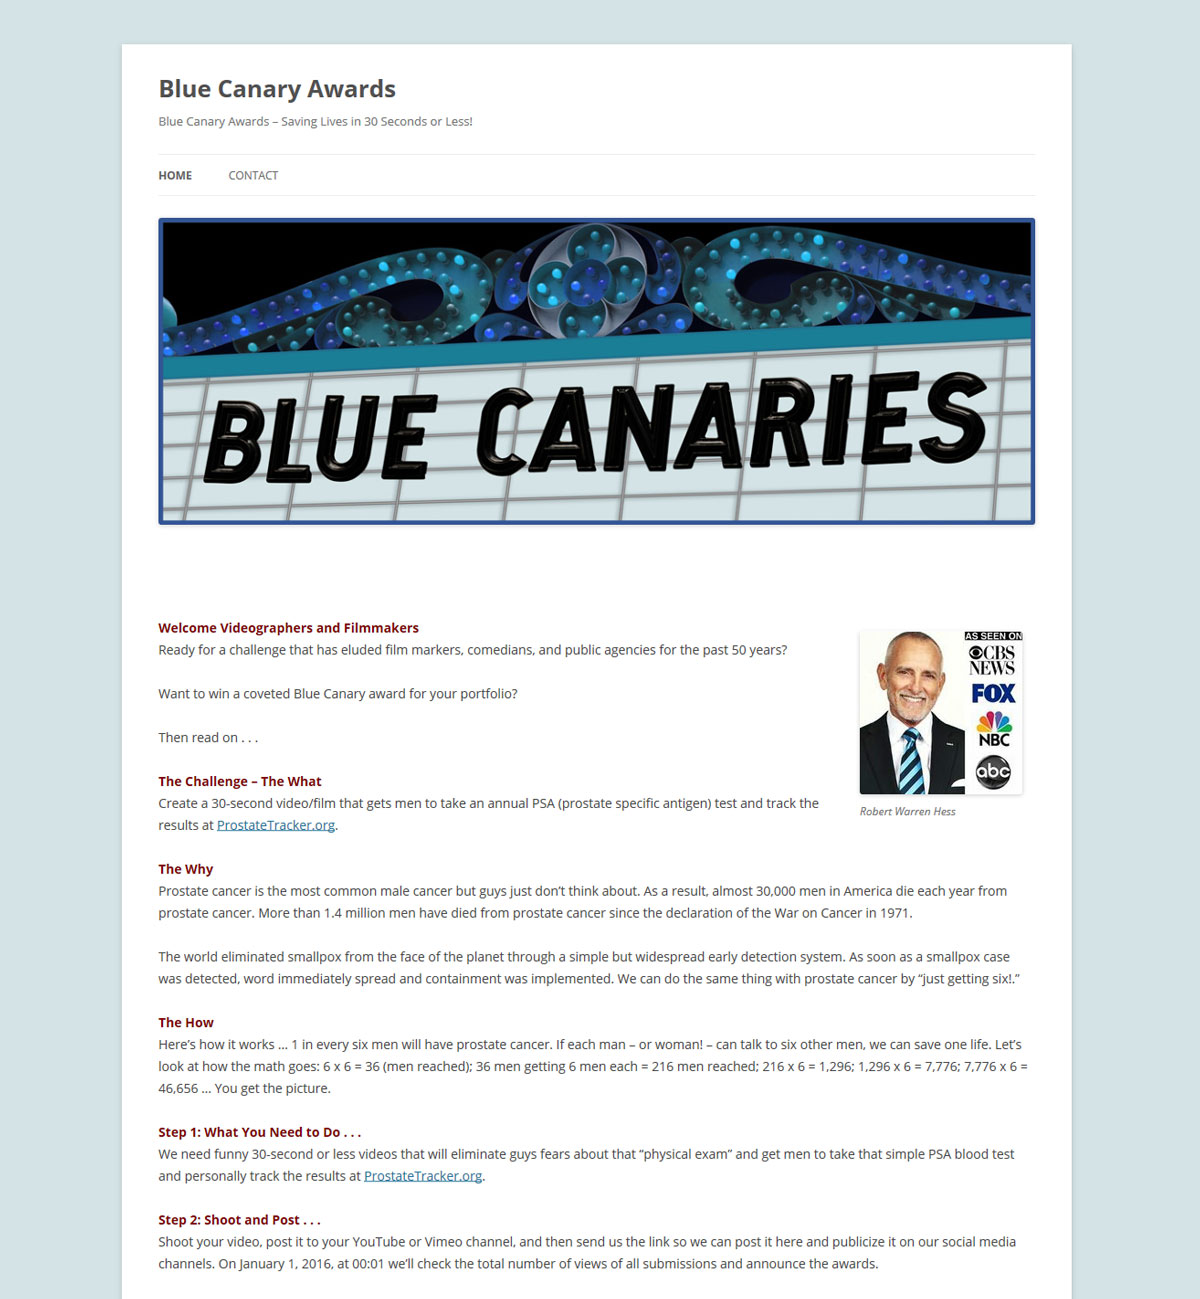 bluecanaries.com website design